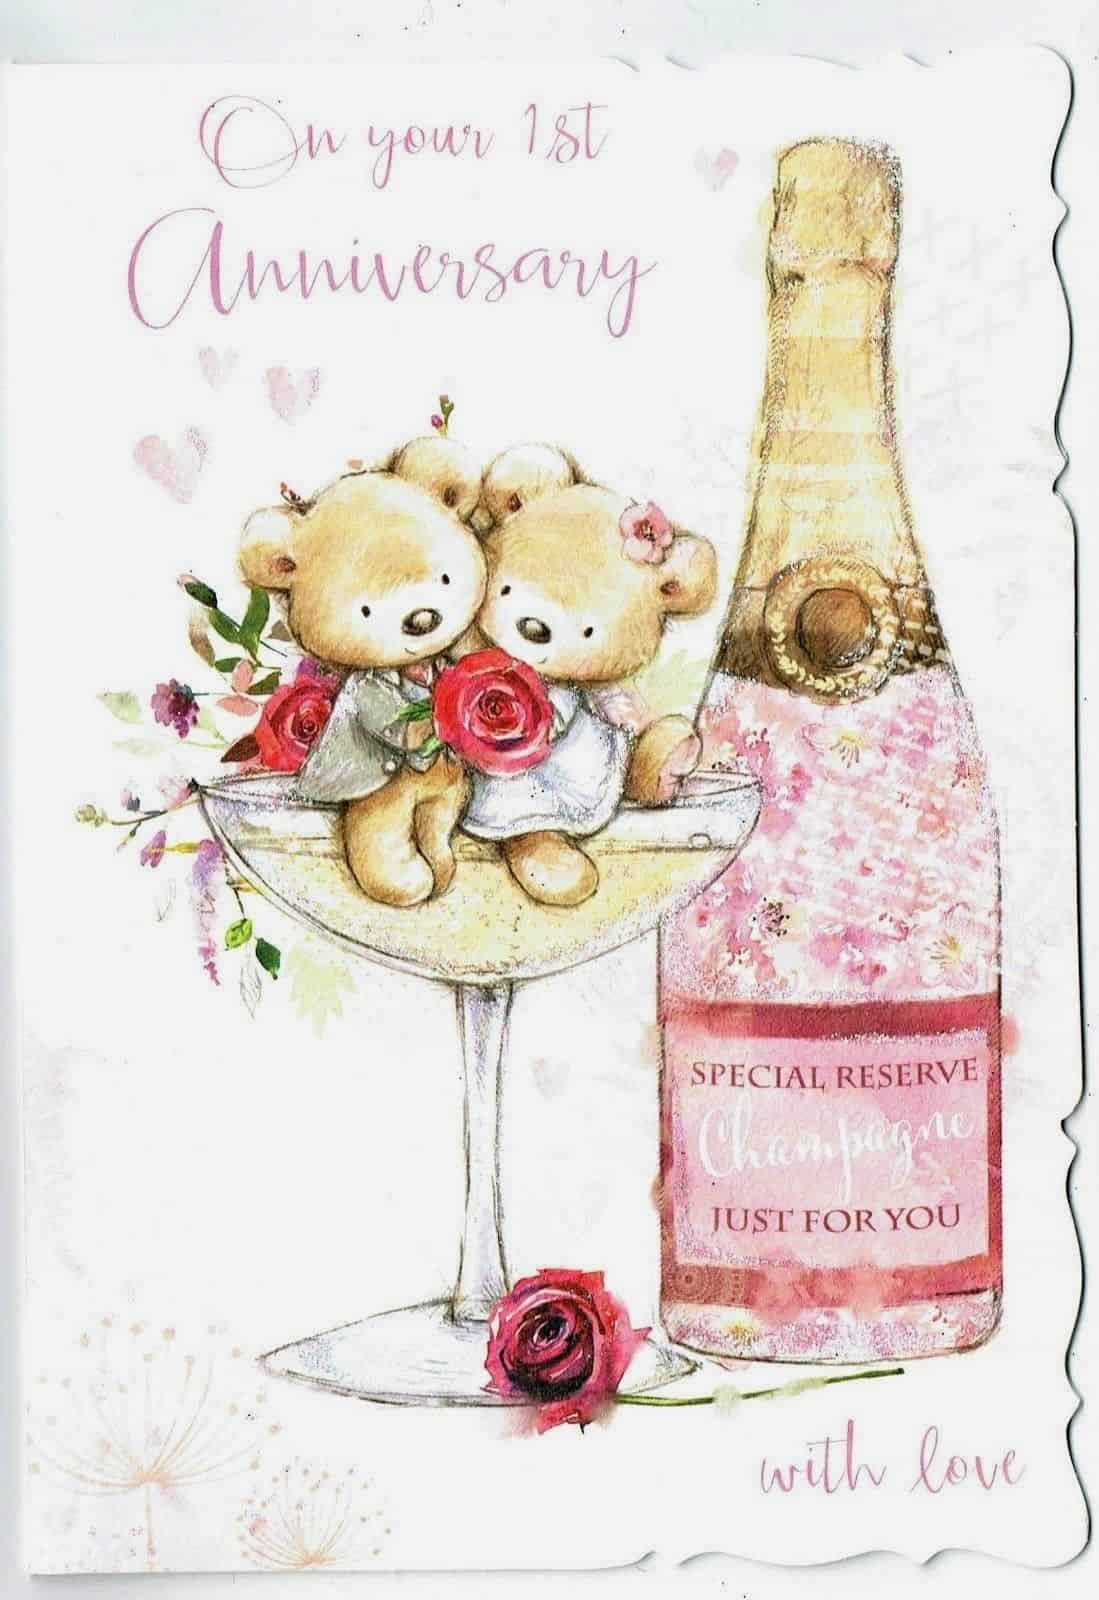 First Wedding Anniversary.1st Wedding Anniversary Card With Teddy Bear And Champagne Glass Design